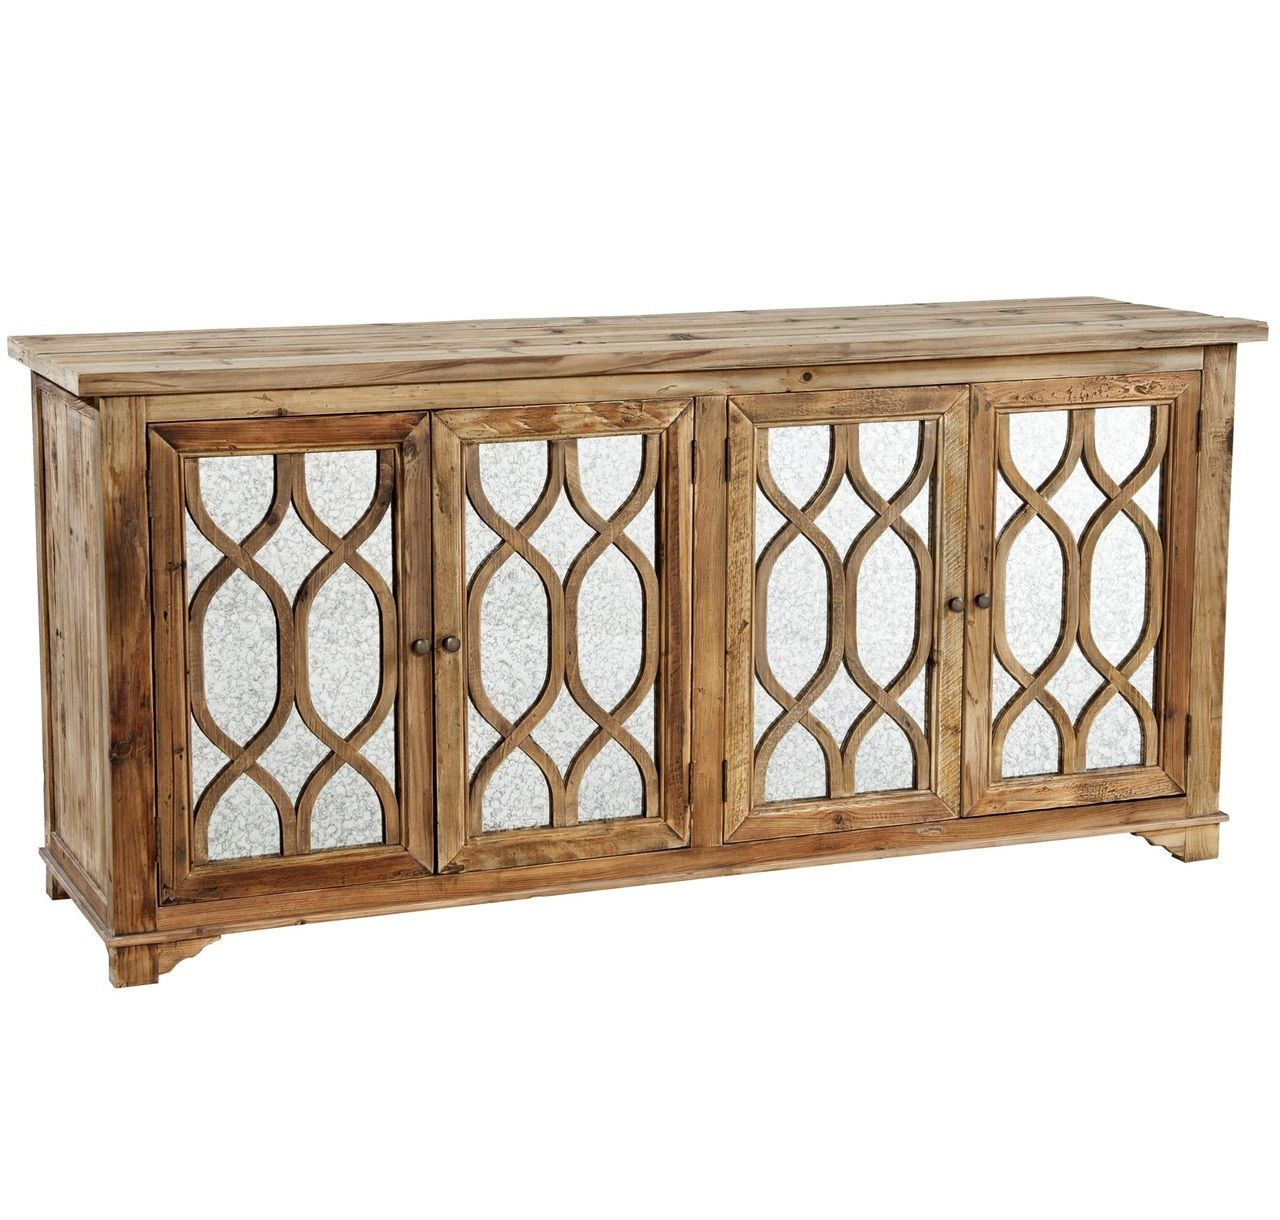 Online Home Furnishing Sites: French Lattice Reclaimed Wood 4 Door Mirrored Sideboard In